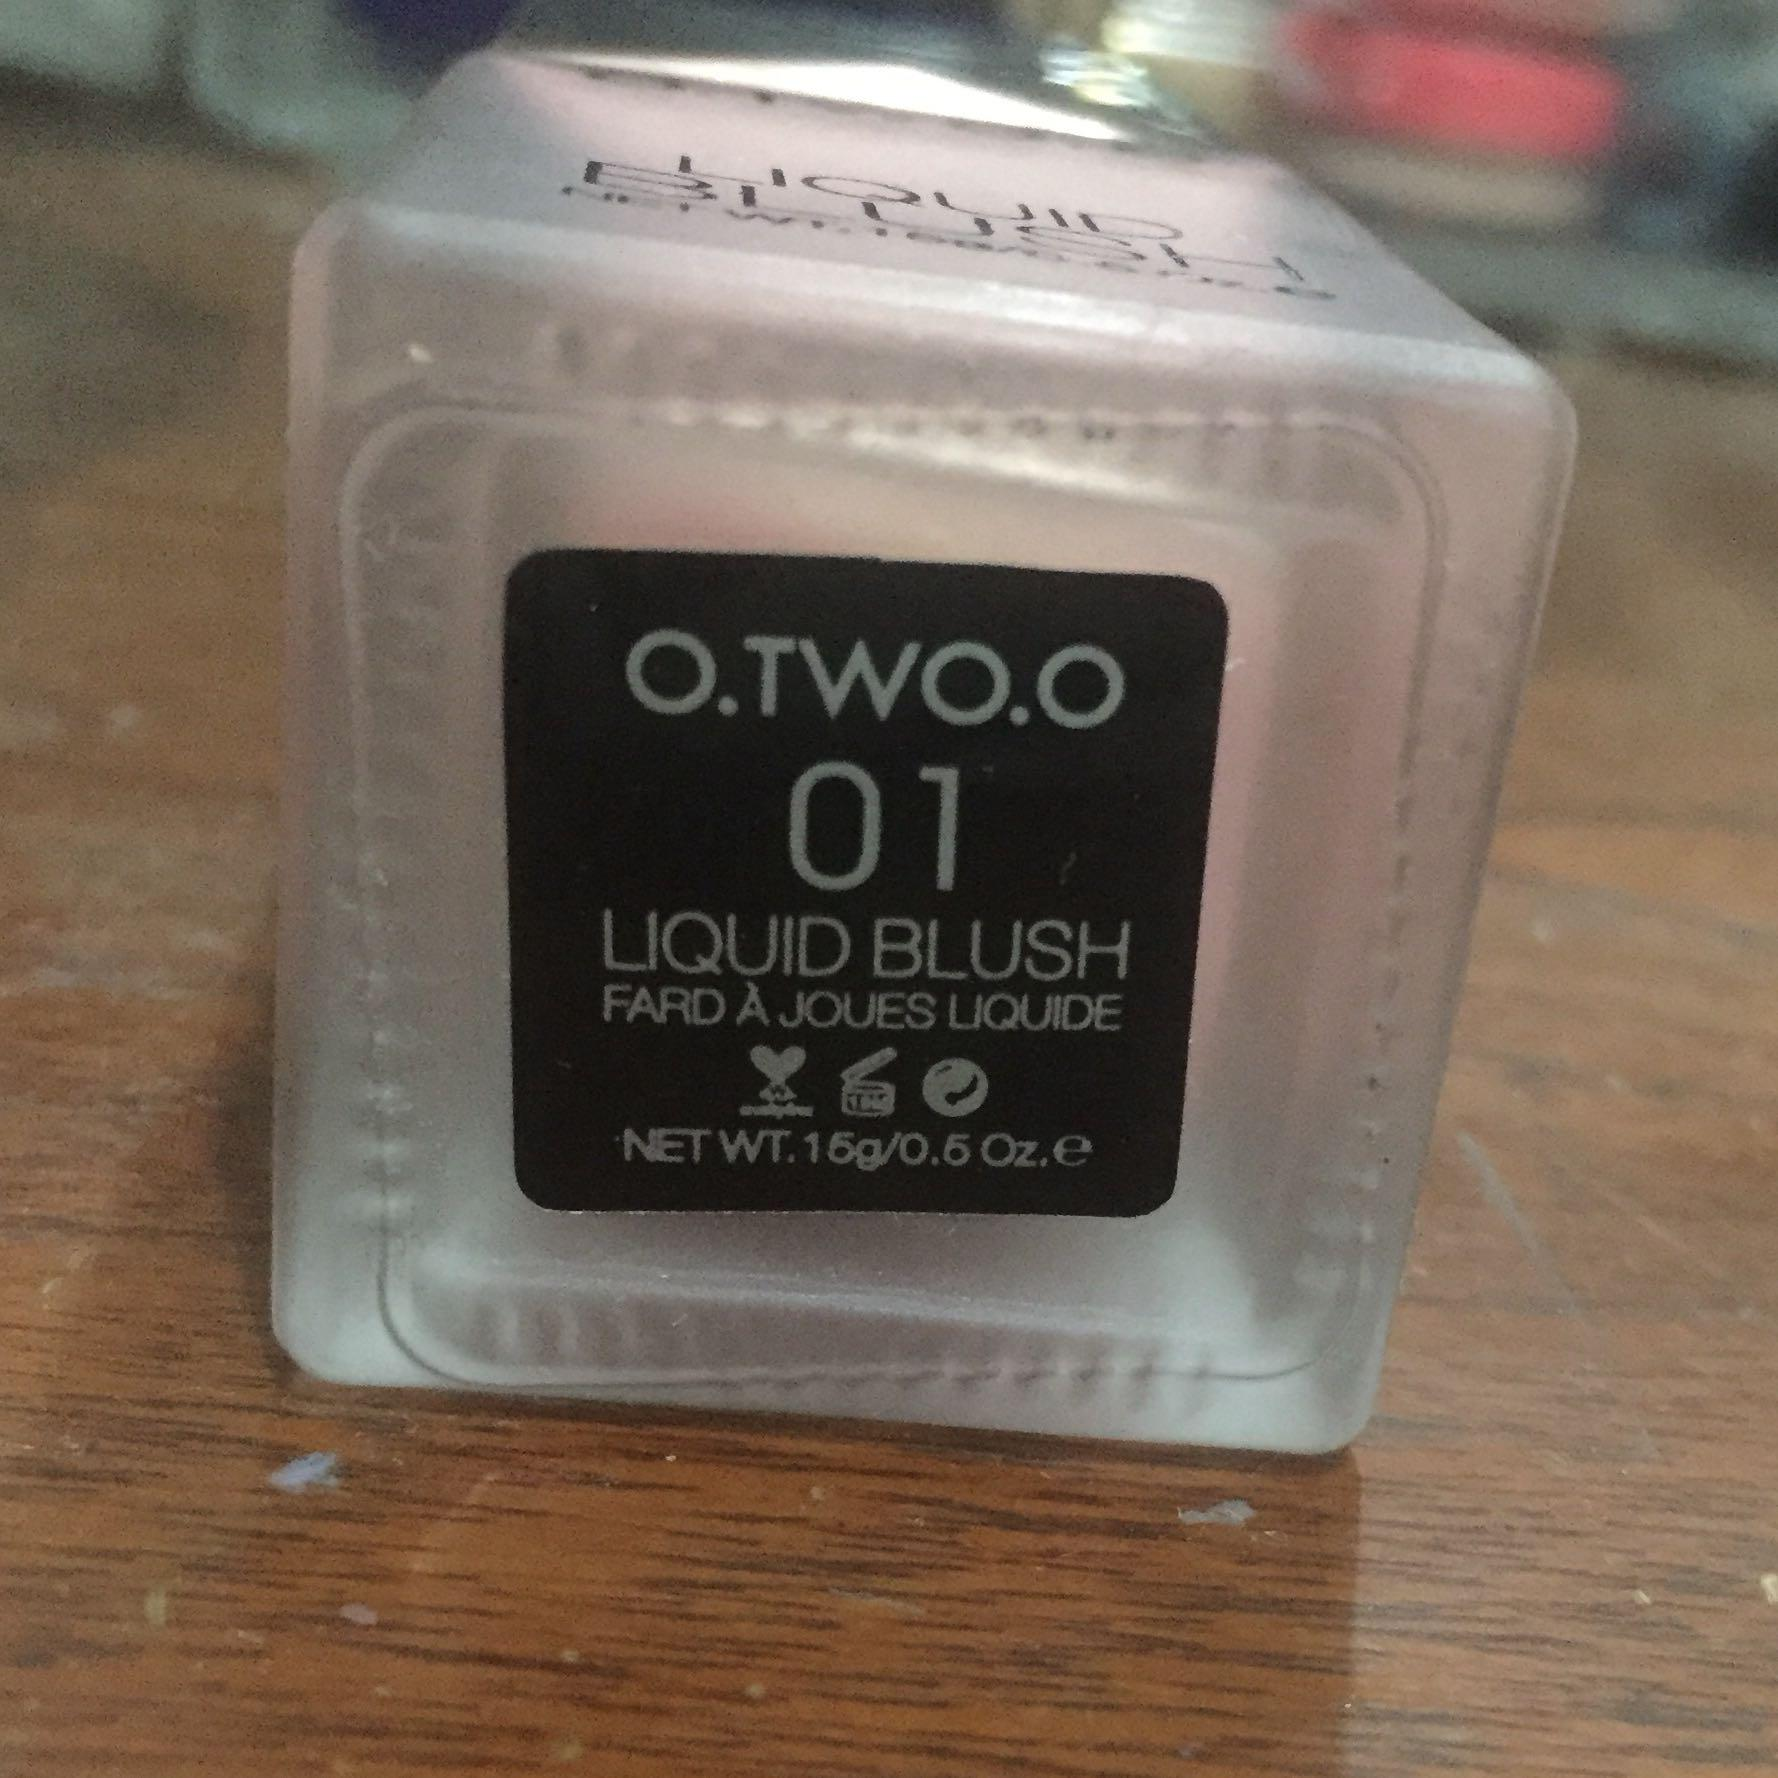 [TURUN HARGA] O.TWO.O LIQUID BLUSH